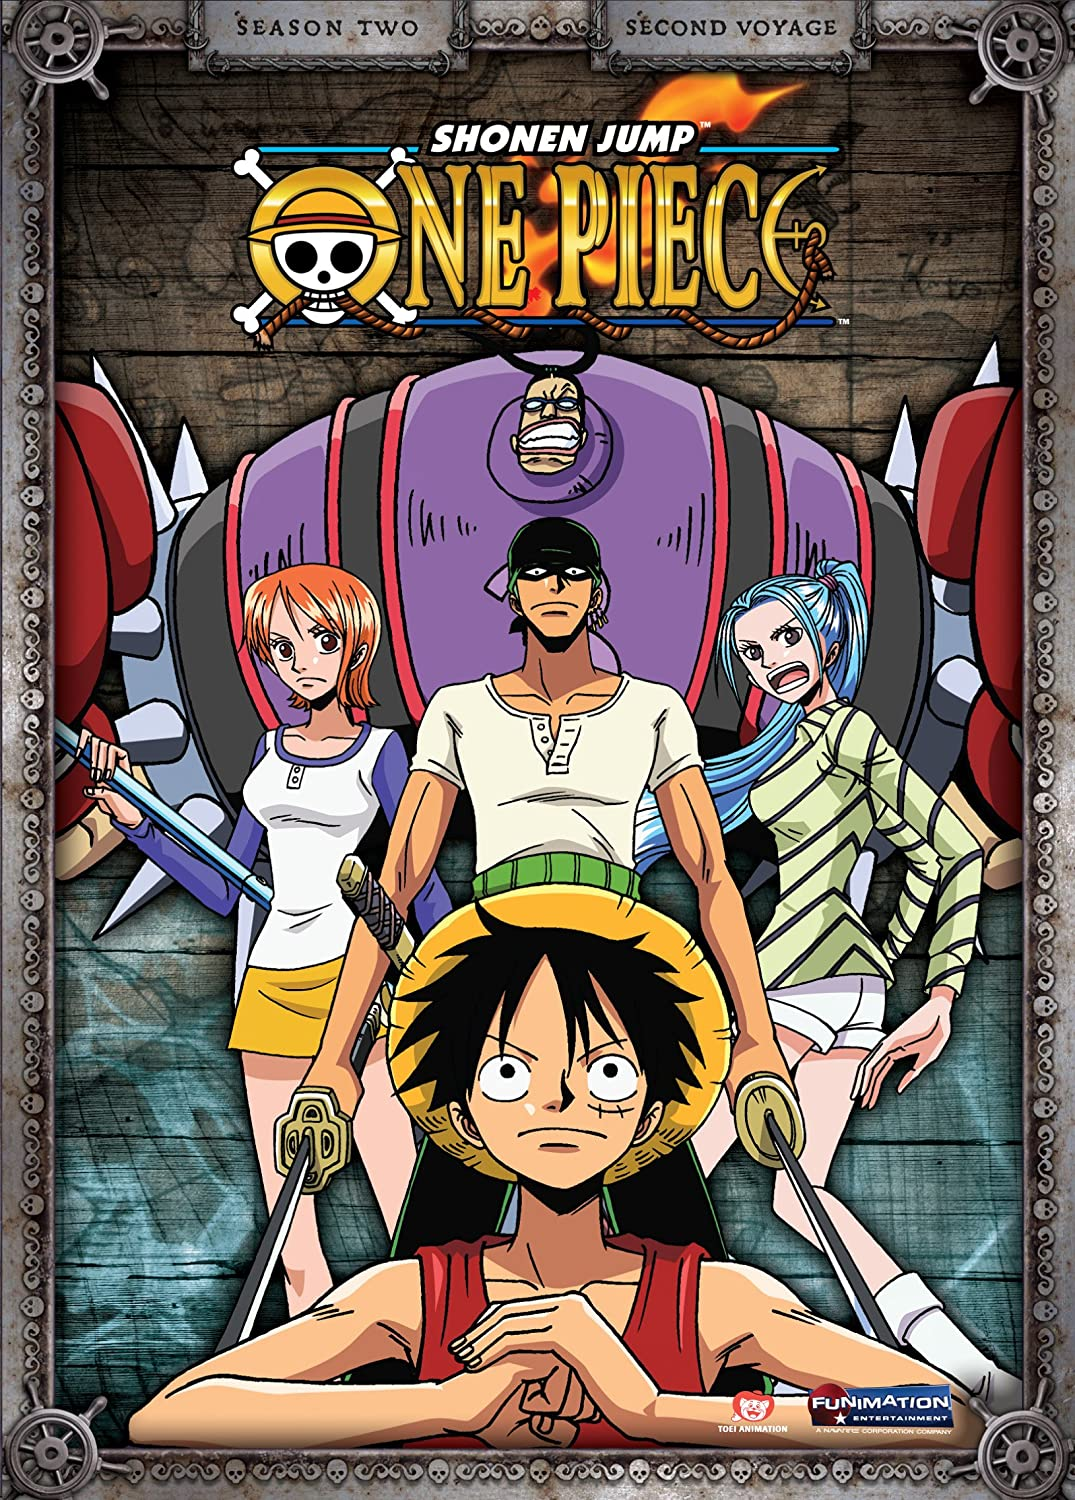 Amazon com: One Piece: Season 2, Second Voyage: Movies & TV